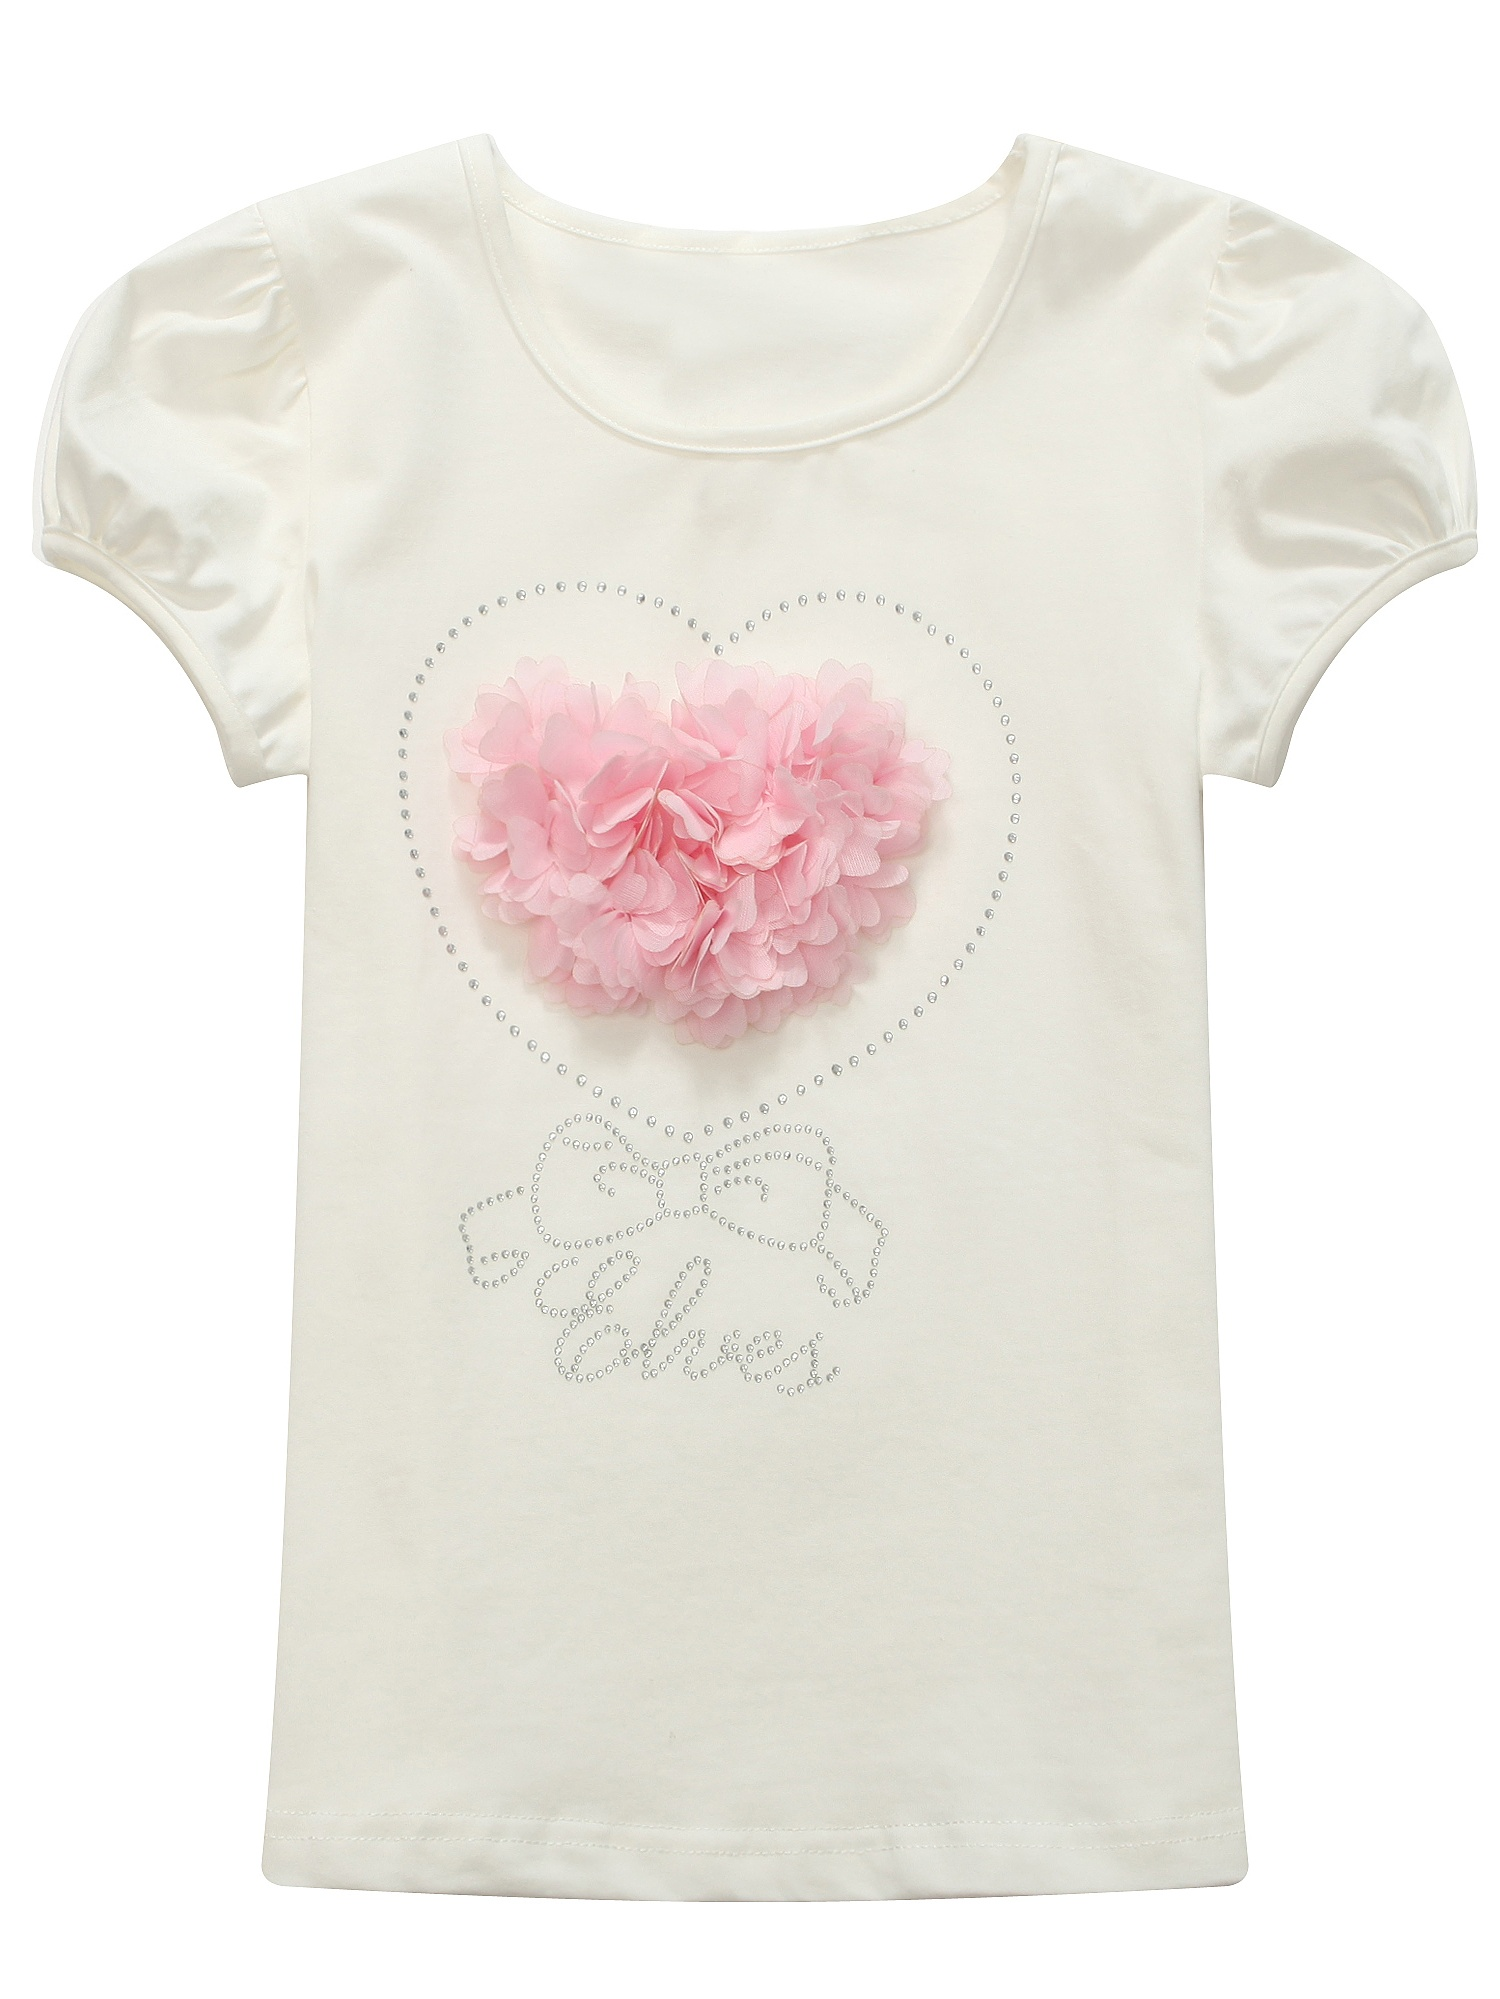 Richie House Girls' 'Elves' Top with Ruffle and Heart RH0906